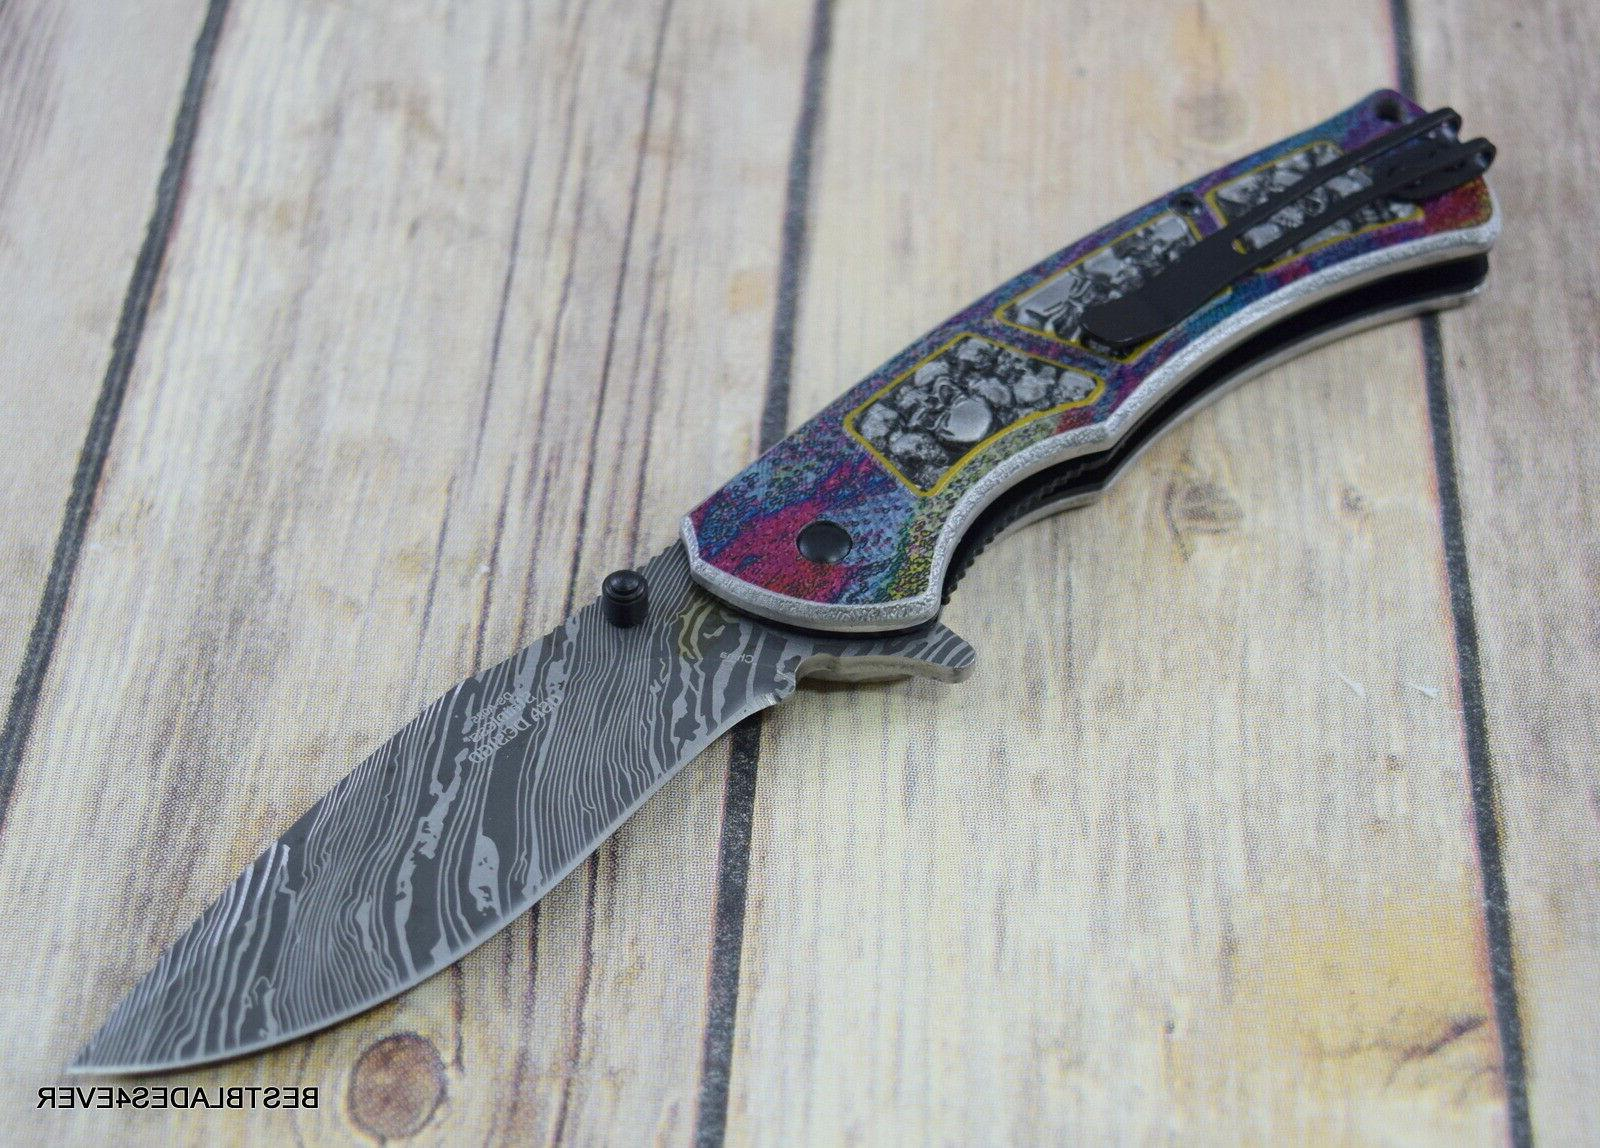 8 BLADES FANTASY ASSISTED KNIFE WITH